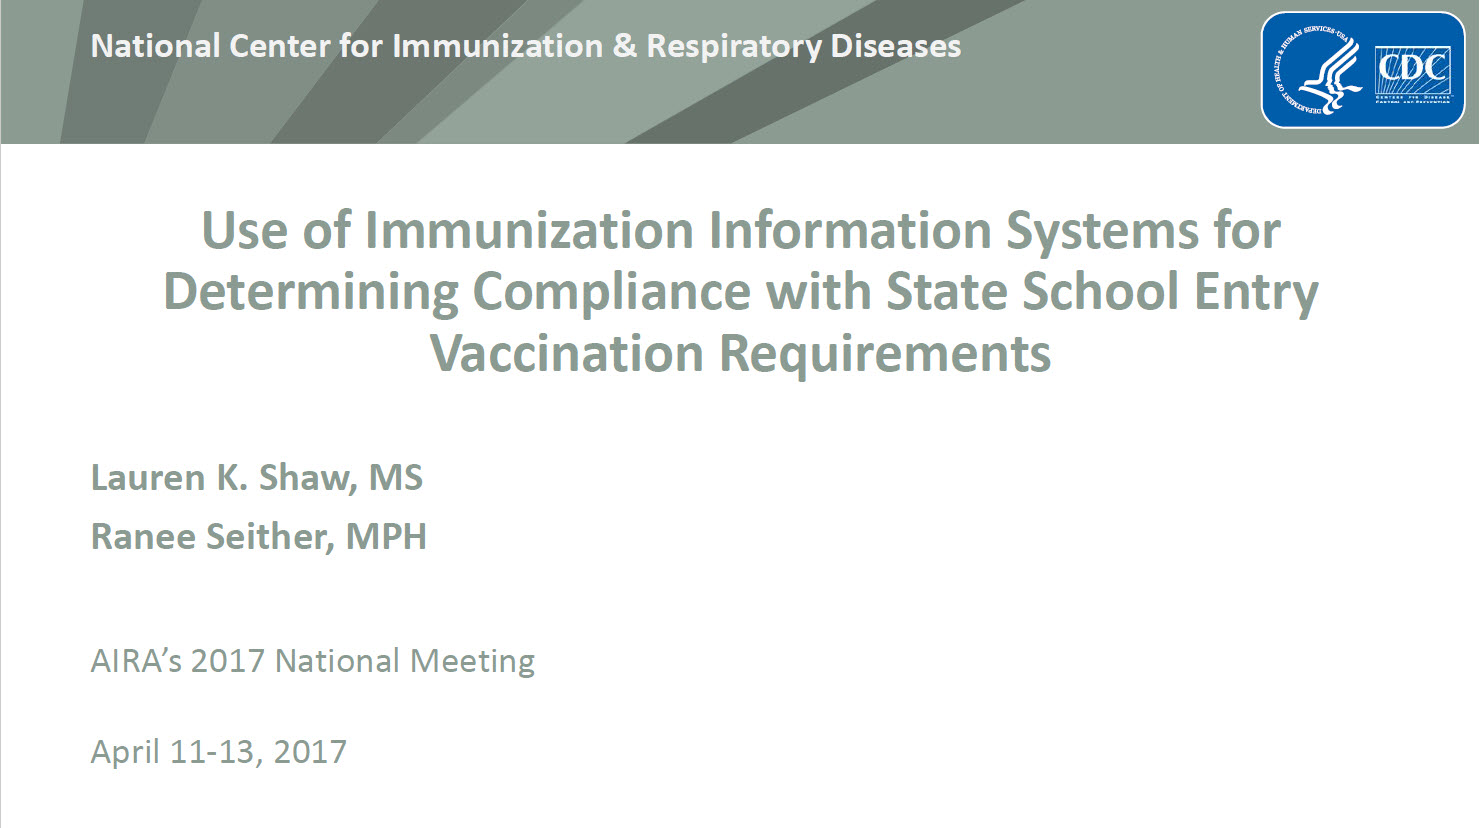 Use of IIS for Determining Compliance with School Vaccination Requirements